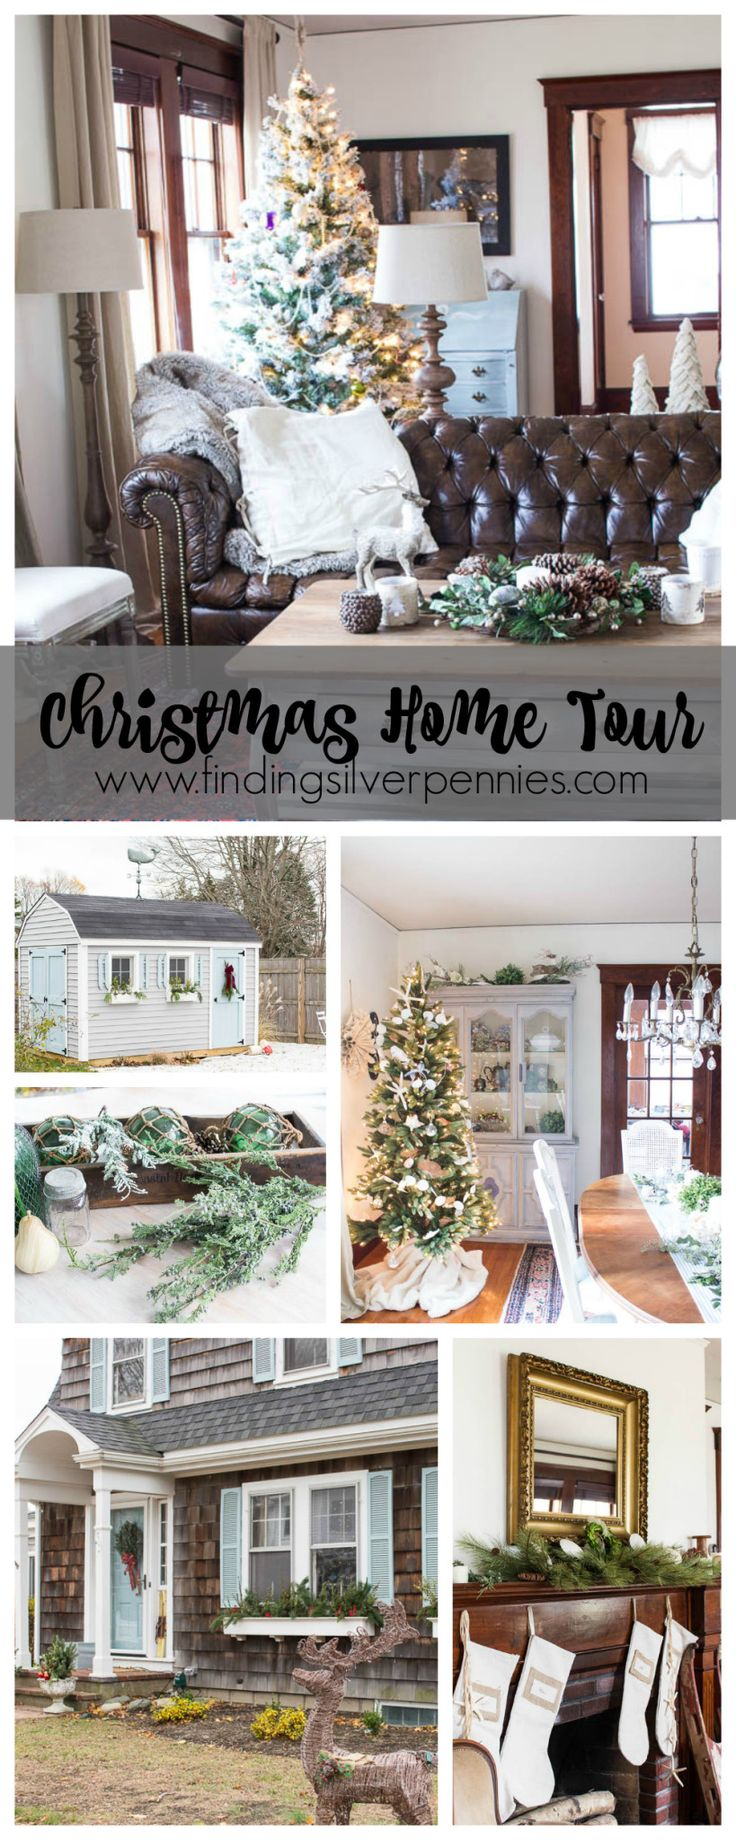 743 tags christmas decorations festival holiday christmas tree views - Christmas Home Tour 2015 Finding Silver Pennies